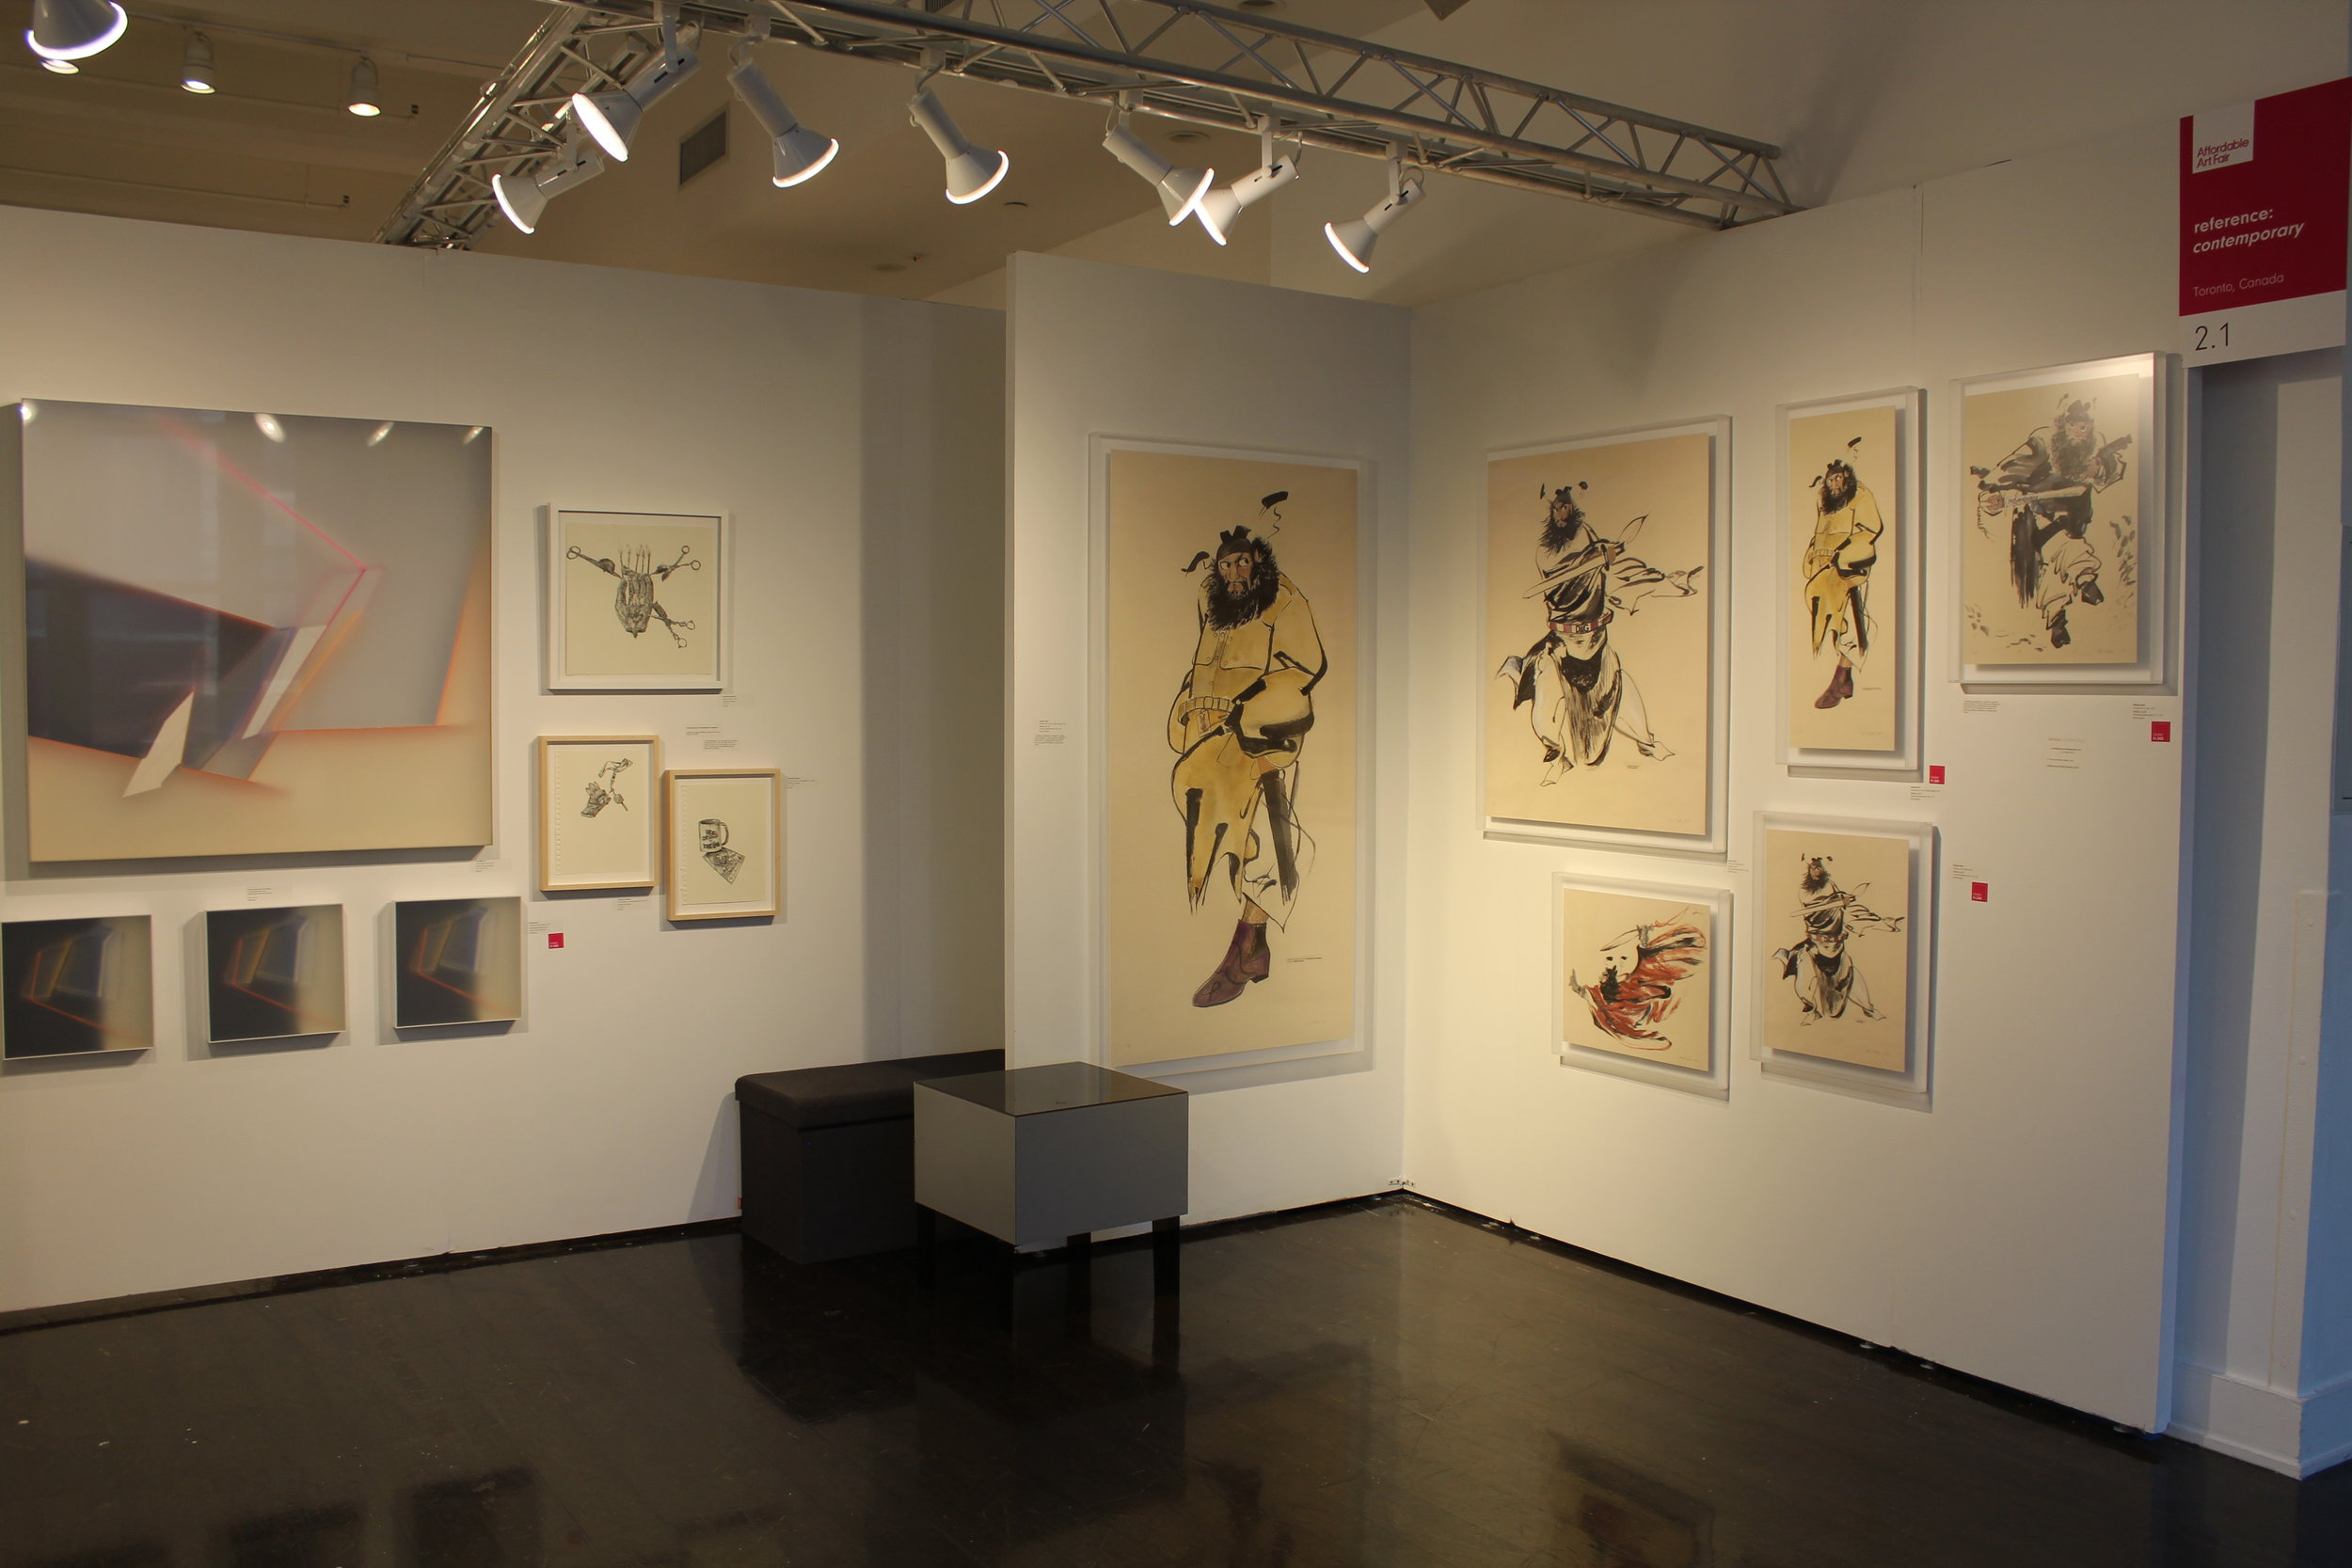 AAFNYCFA17_ReferenceContemporary_2.1 (3).jpg